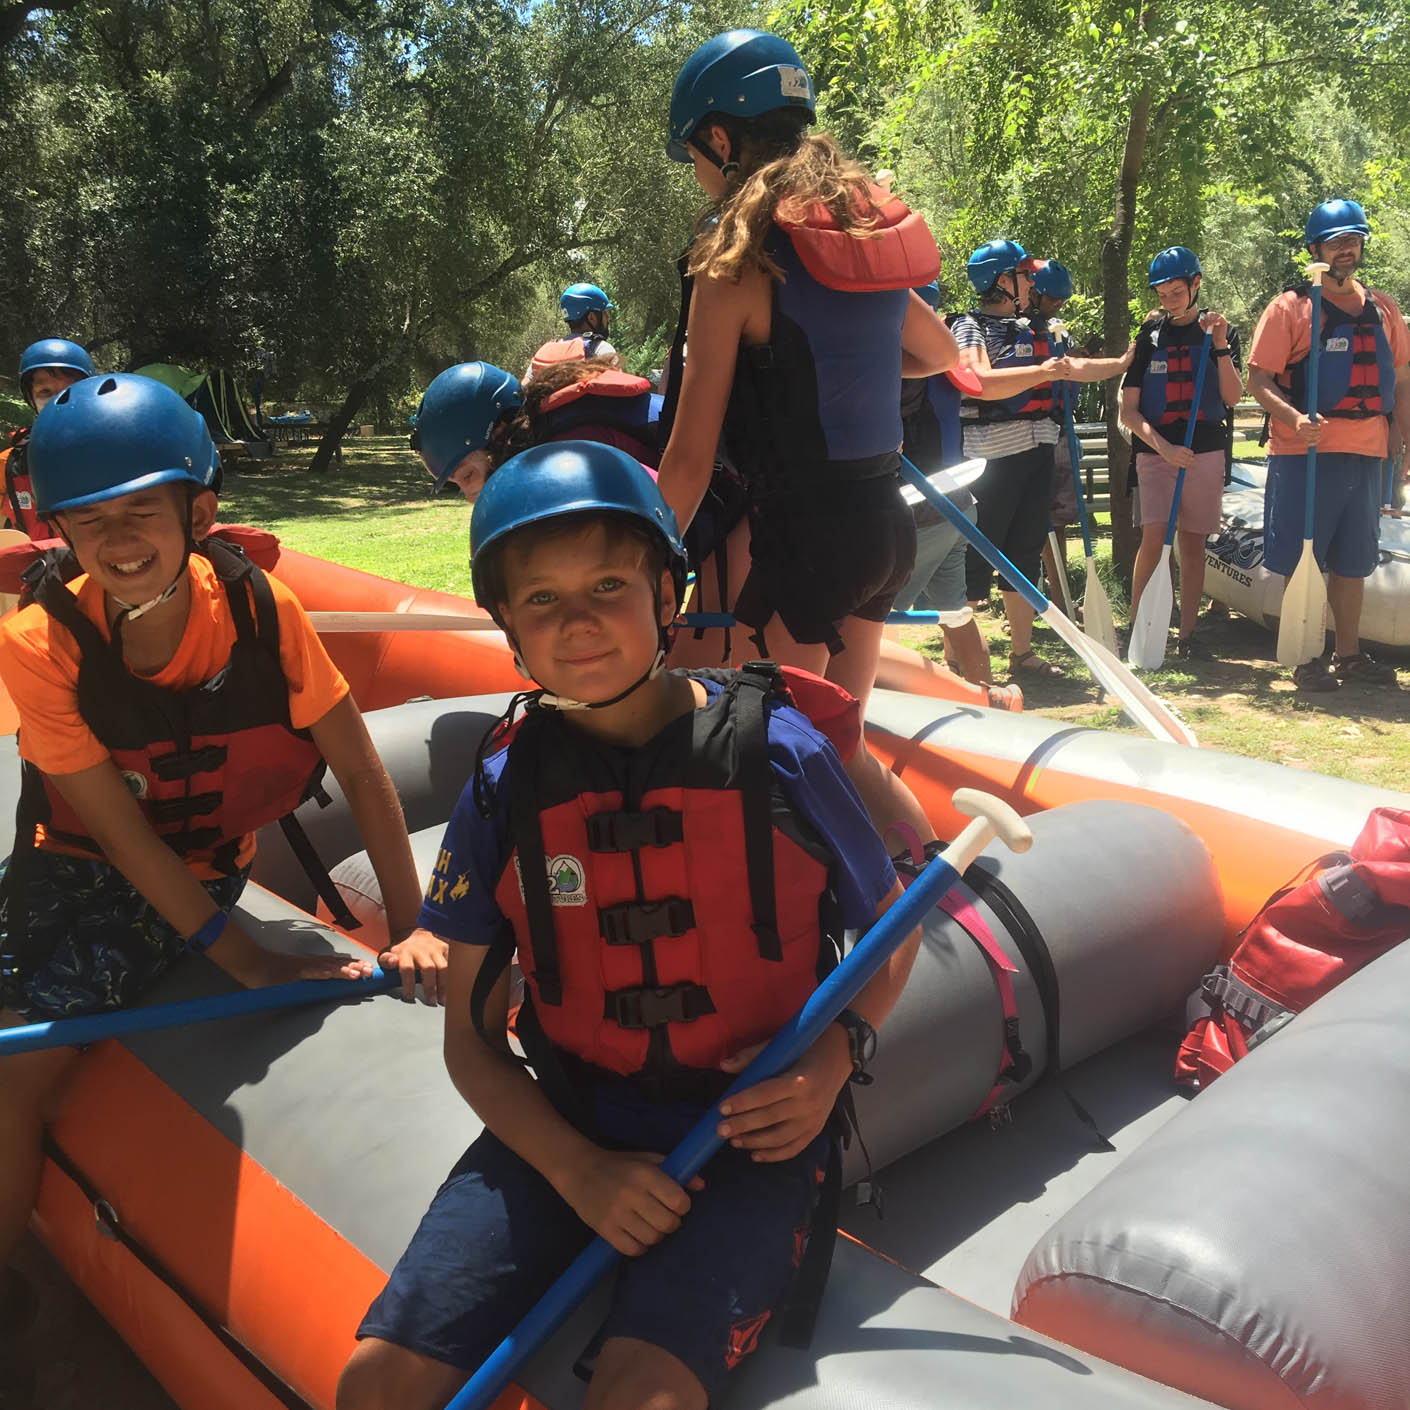 California Discovery whitewater rafting